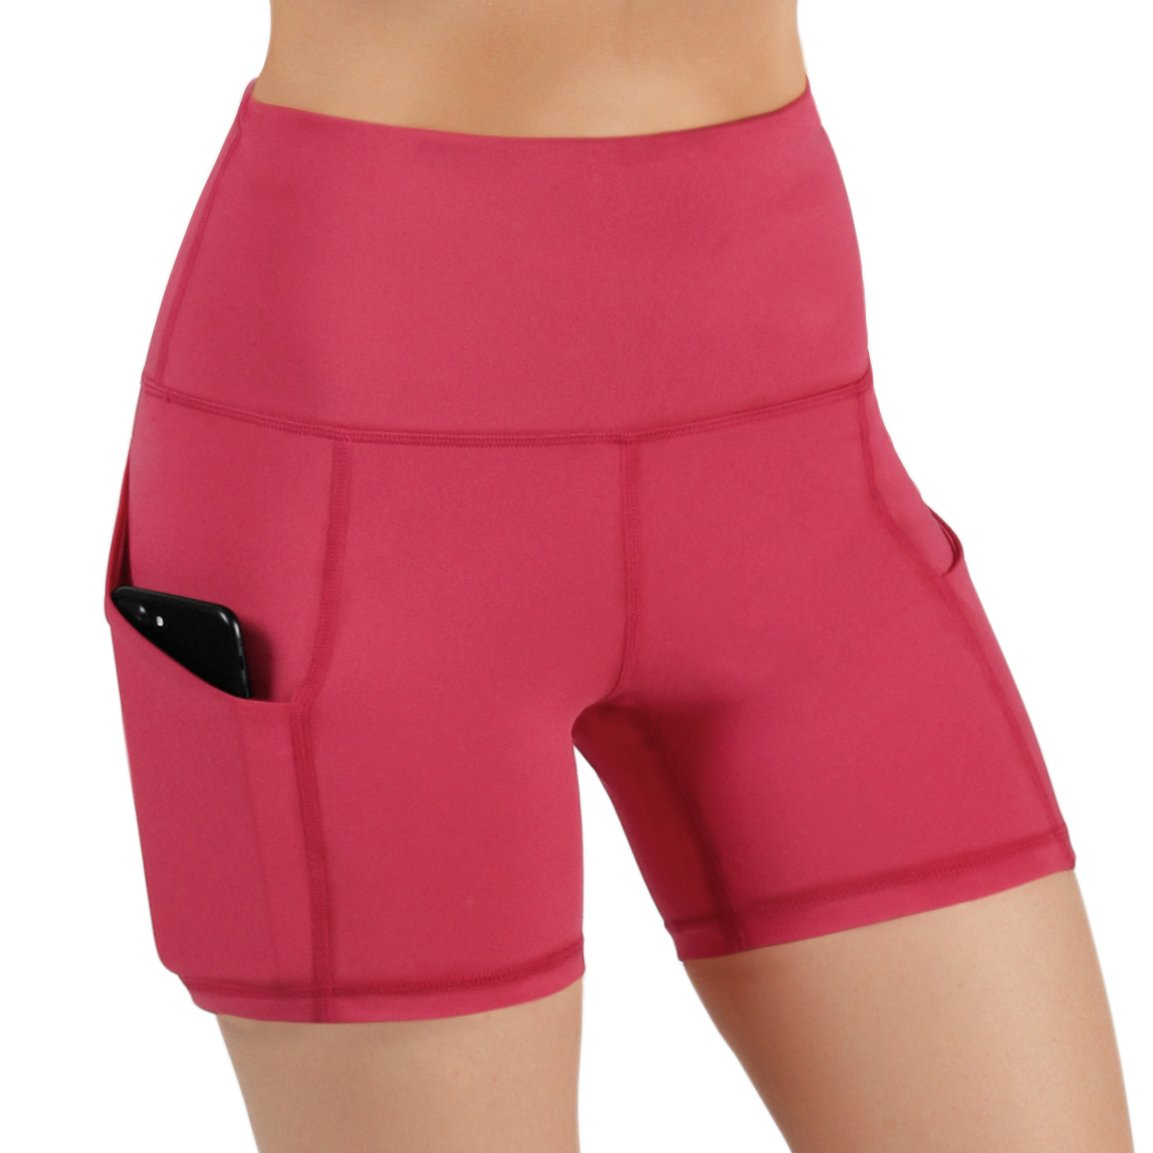 ODODOS High Waist Out Pocket Yoga Short Tummy Control Workout Running Athletic Non See-Through Yoga Shorts,Coral,X-Small